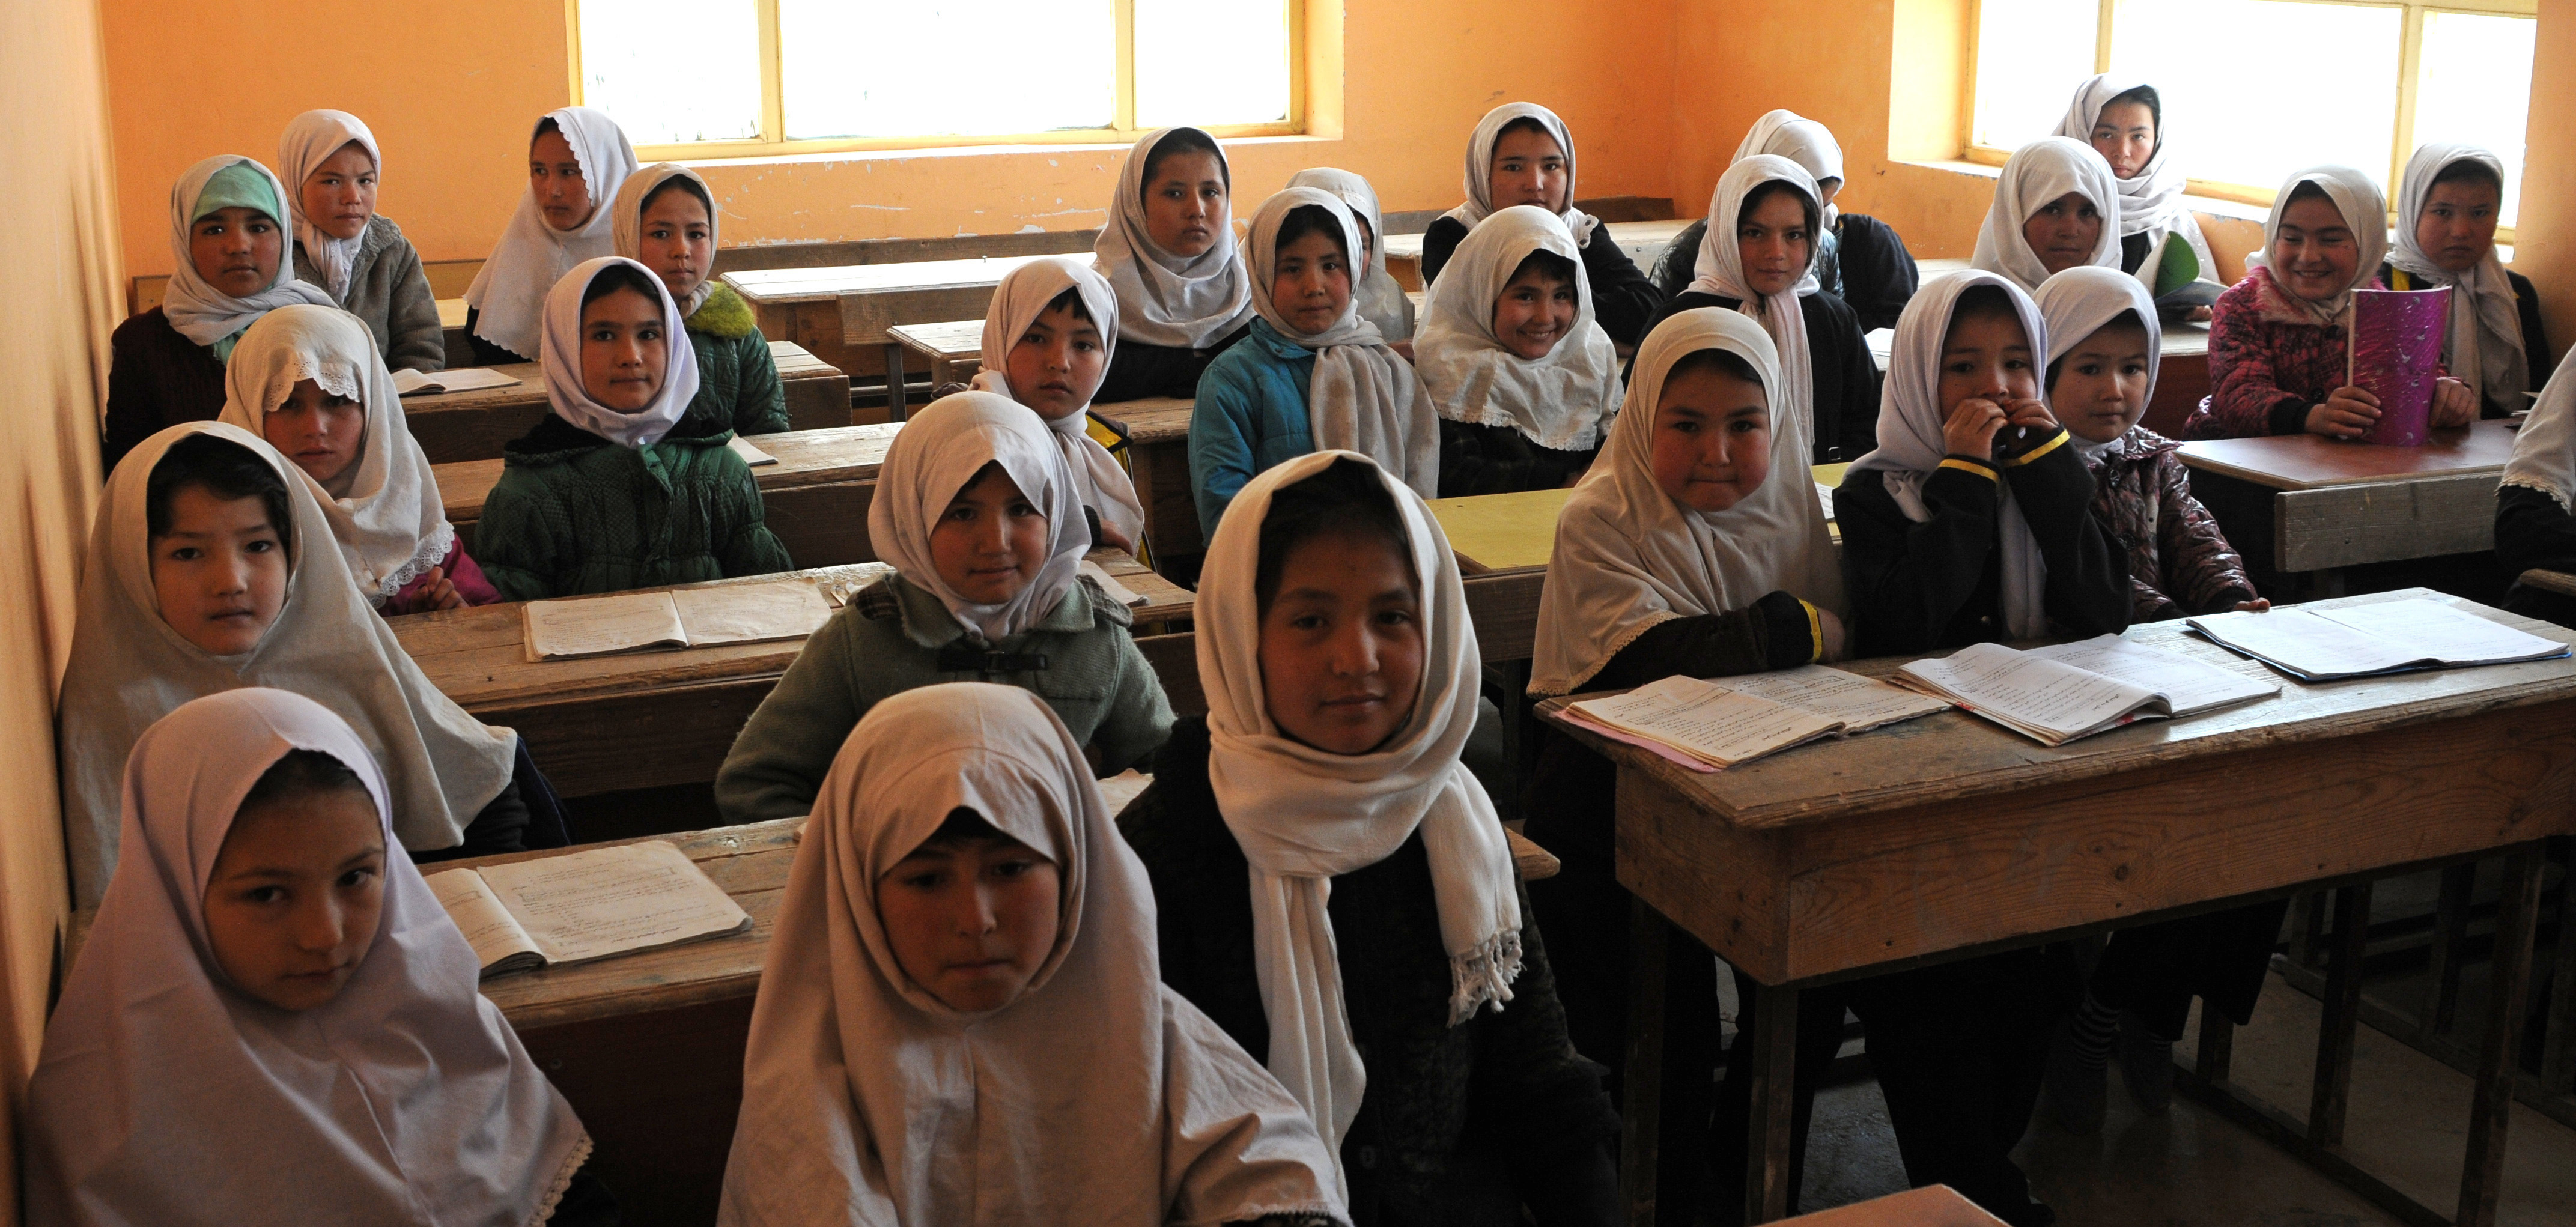 lassroom girls File:Young Afghan girls inside the classroom of Aliabad School-2012.jpg